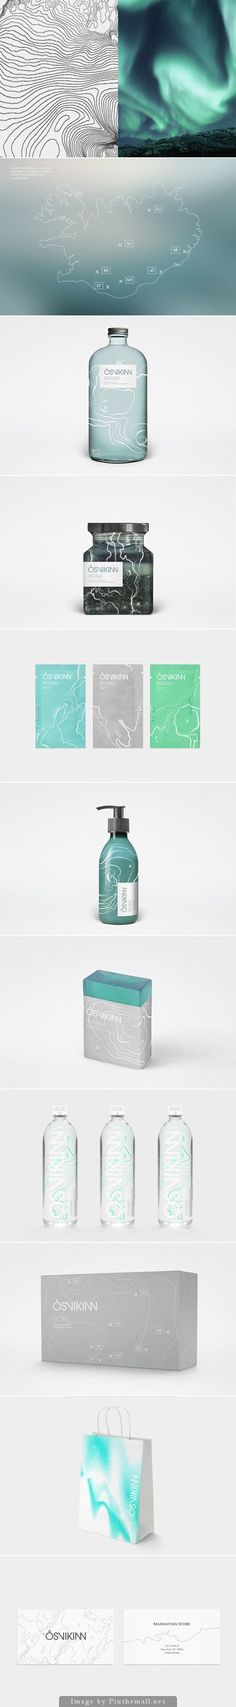 Ósvikinn a beautiful student packaging design and branding concept for a line of natural health and wellness products from Iceland.